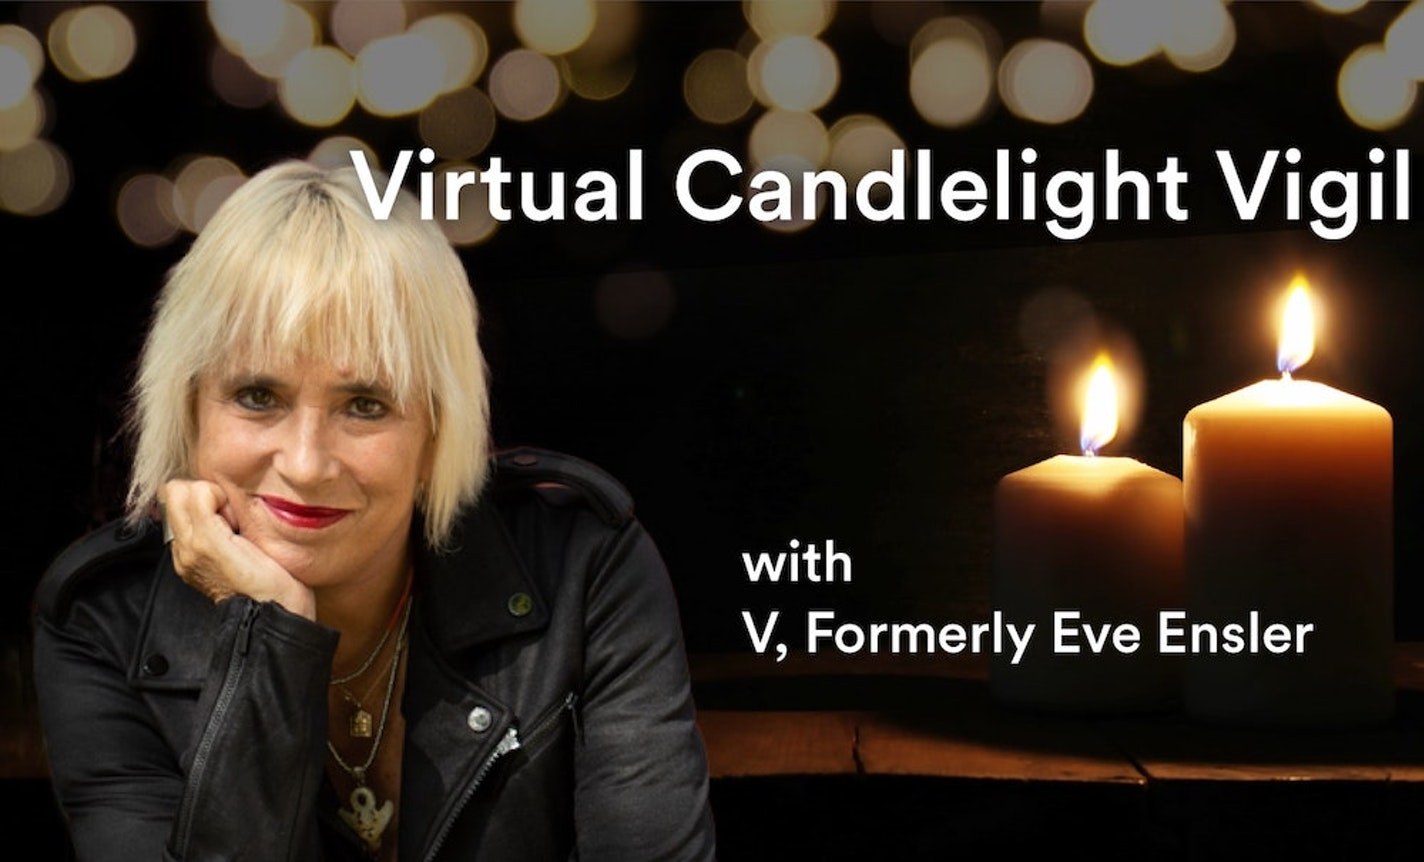 Candlelight Vigil with the creator of The Vagina Monologues